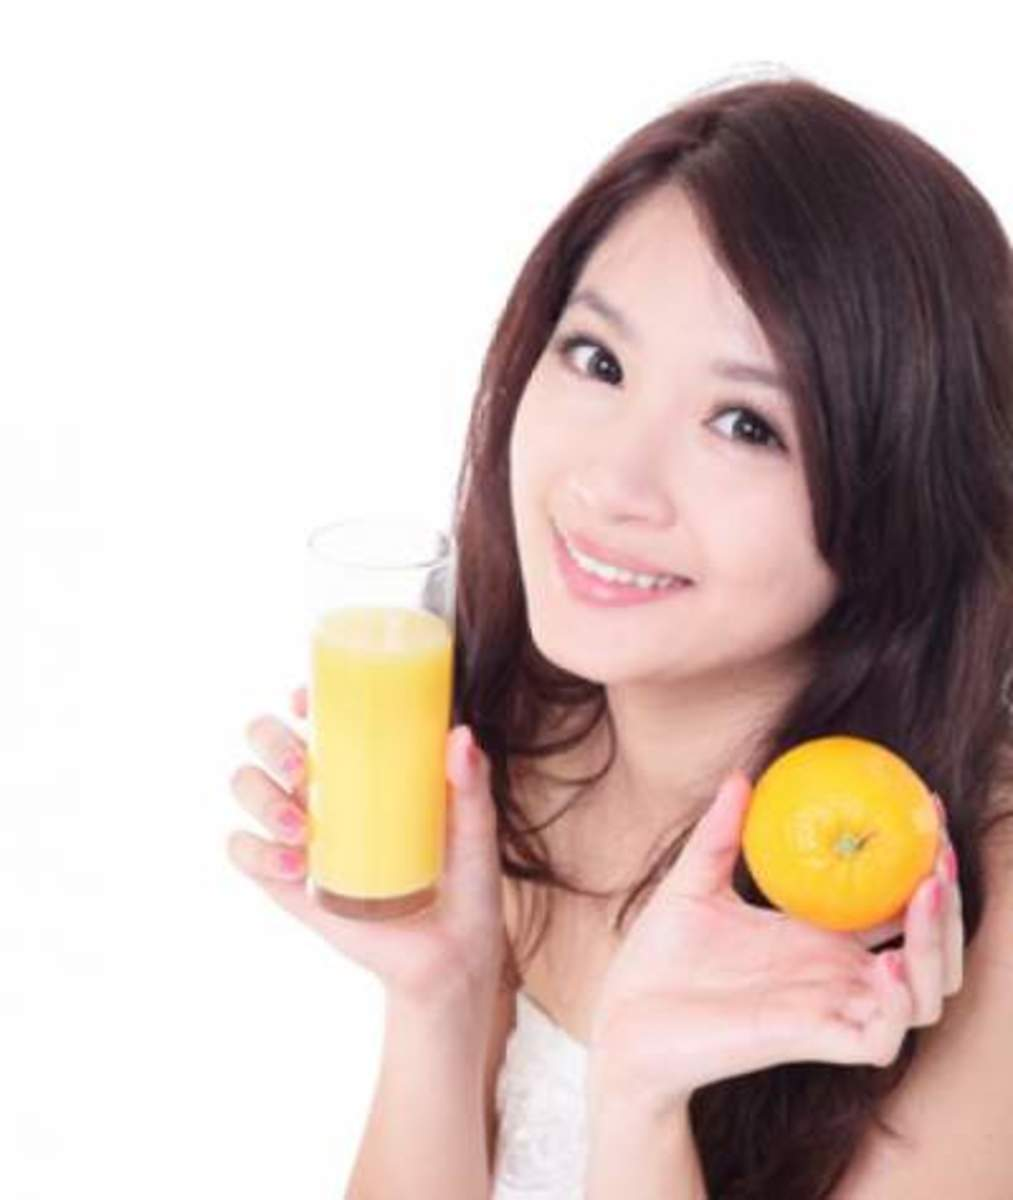 Does vitamin C lighten the skin?